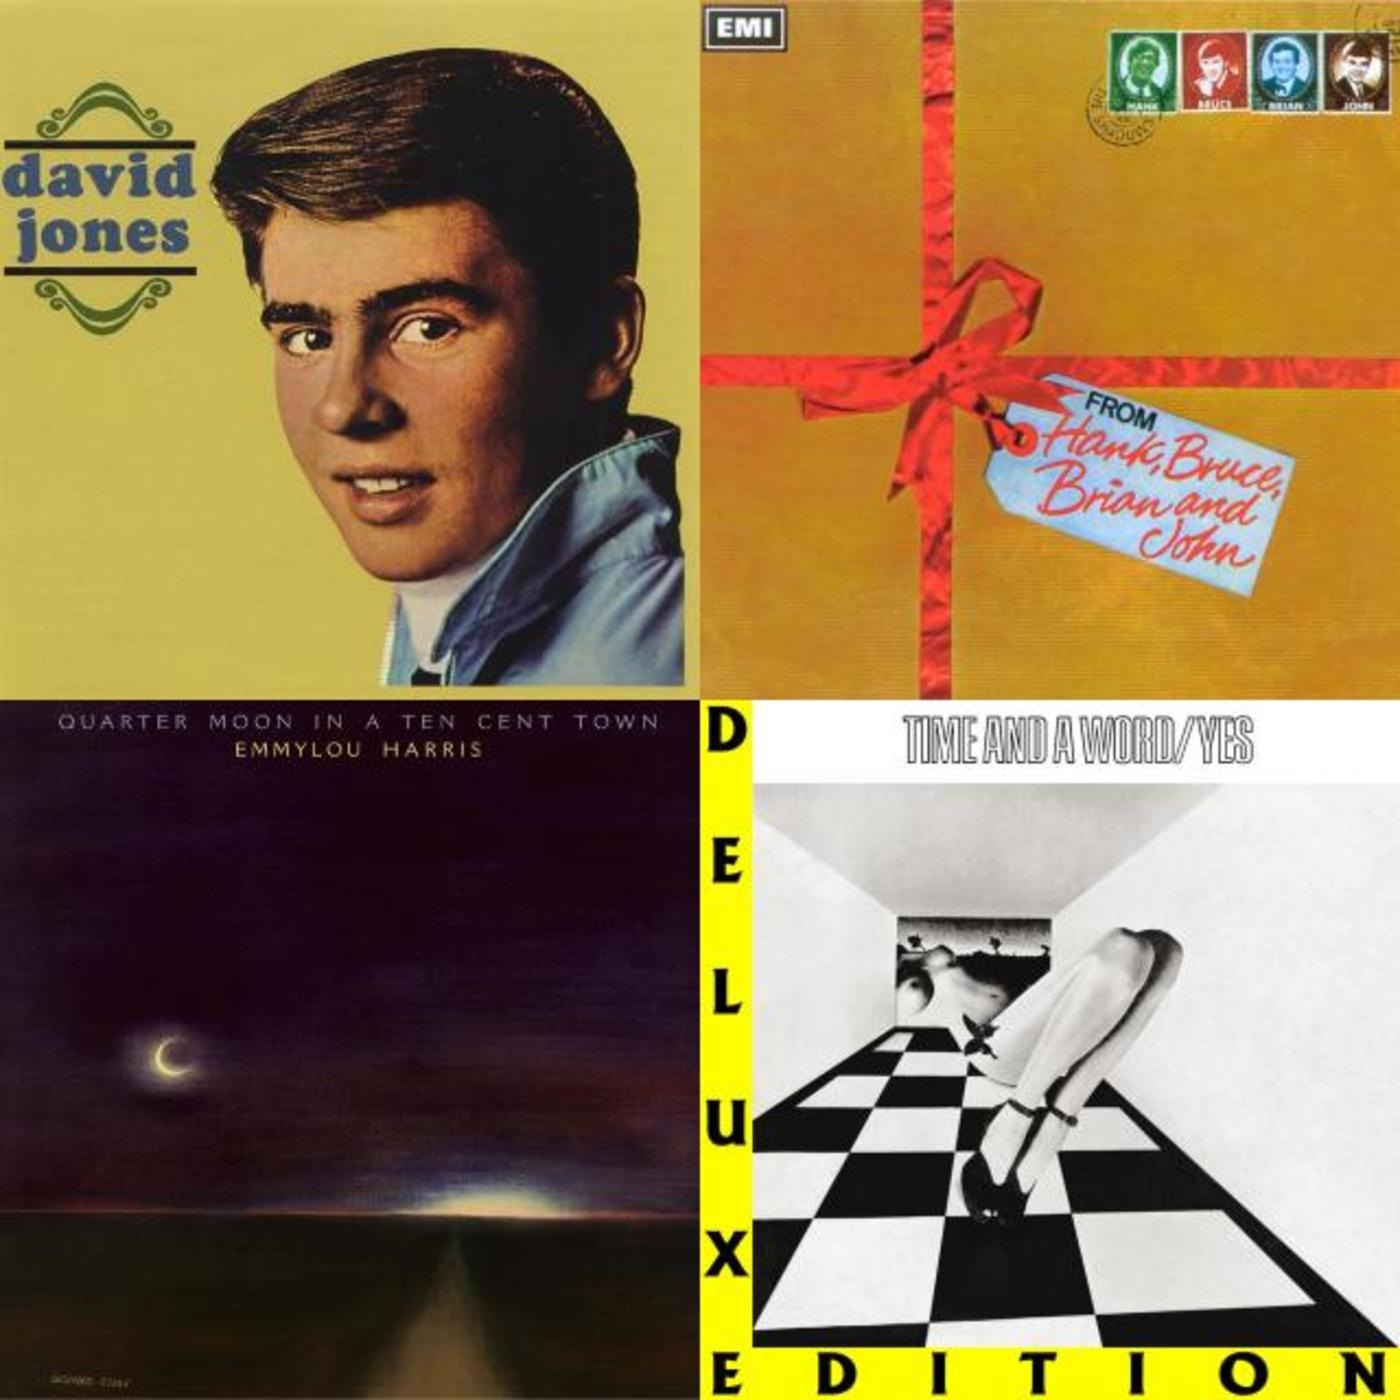 Snap, Crackle, and How's Your Dad? A Father's Day Playlist - The Shadows, Emmylou Harris, Yes, David Jones, The Monkees, Tim Buckley, Tony Joe White, Judy Collins, Jesse Frederick